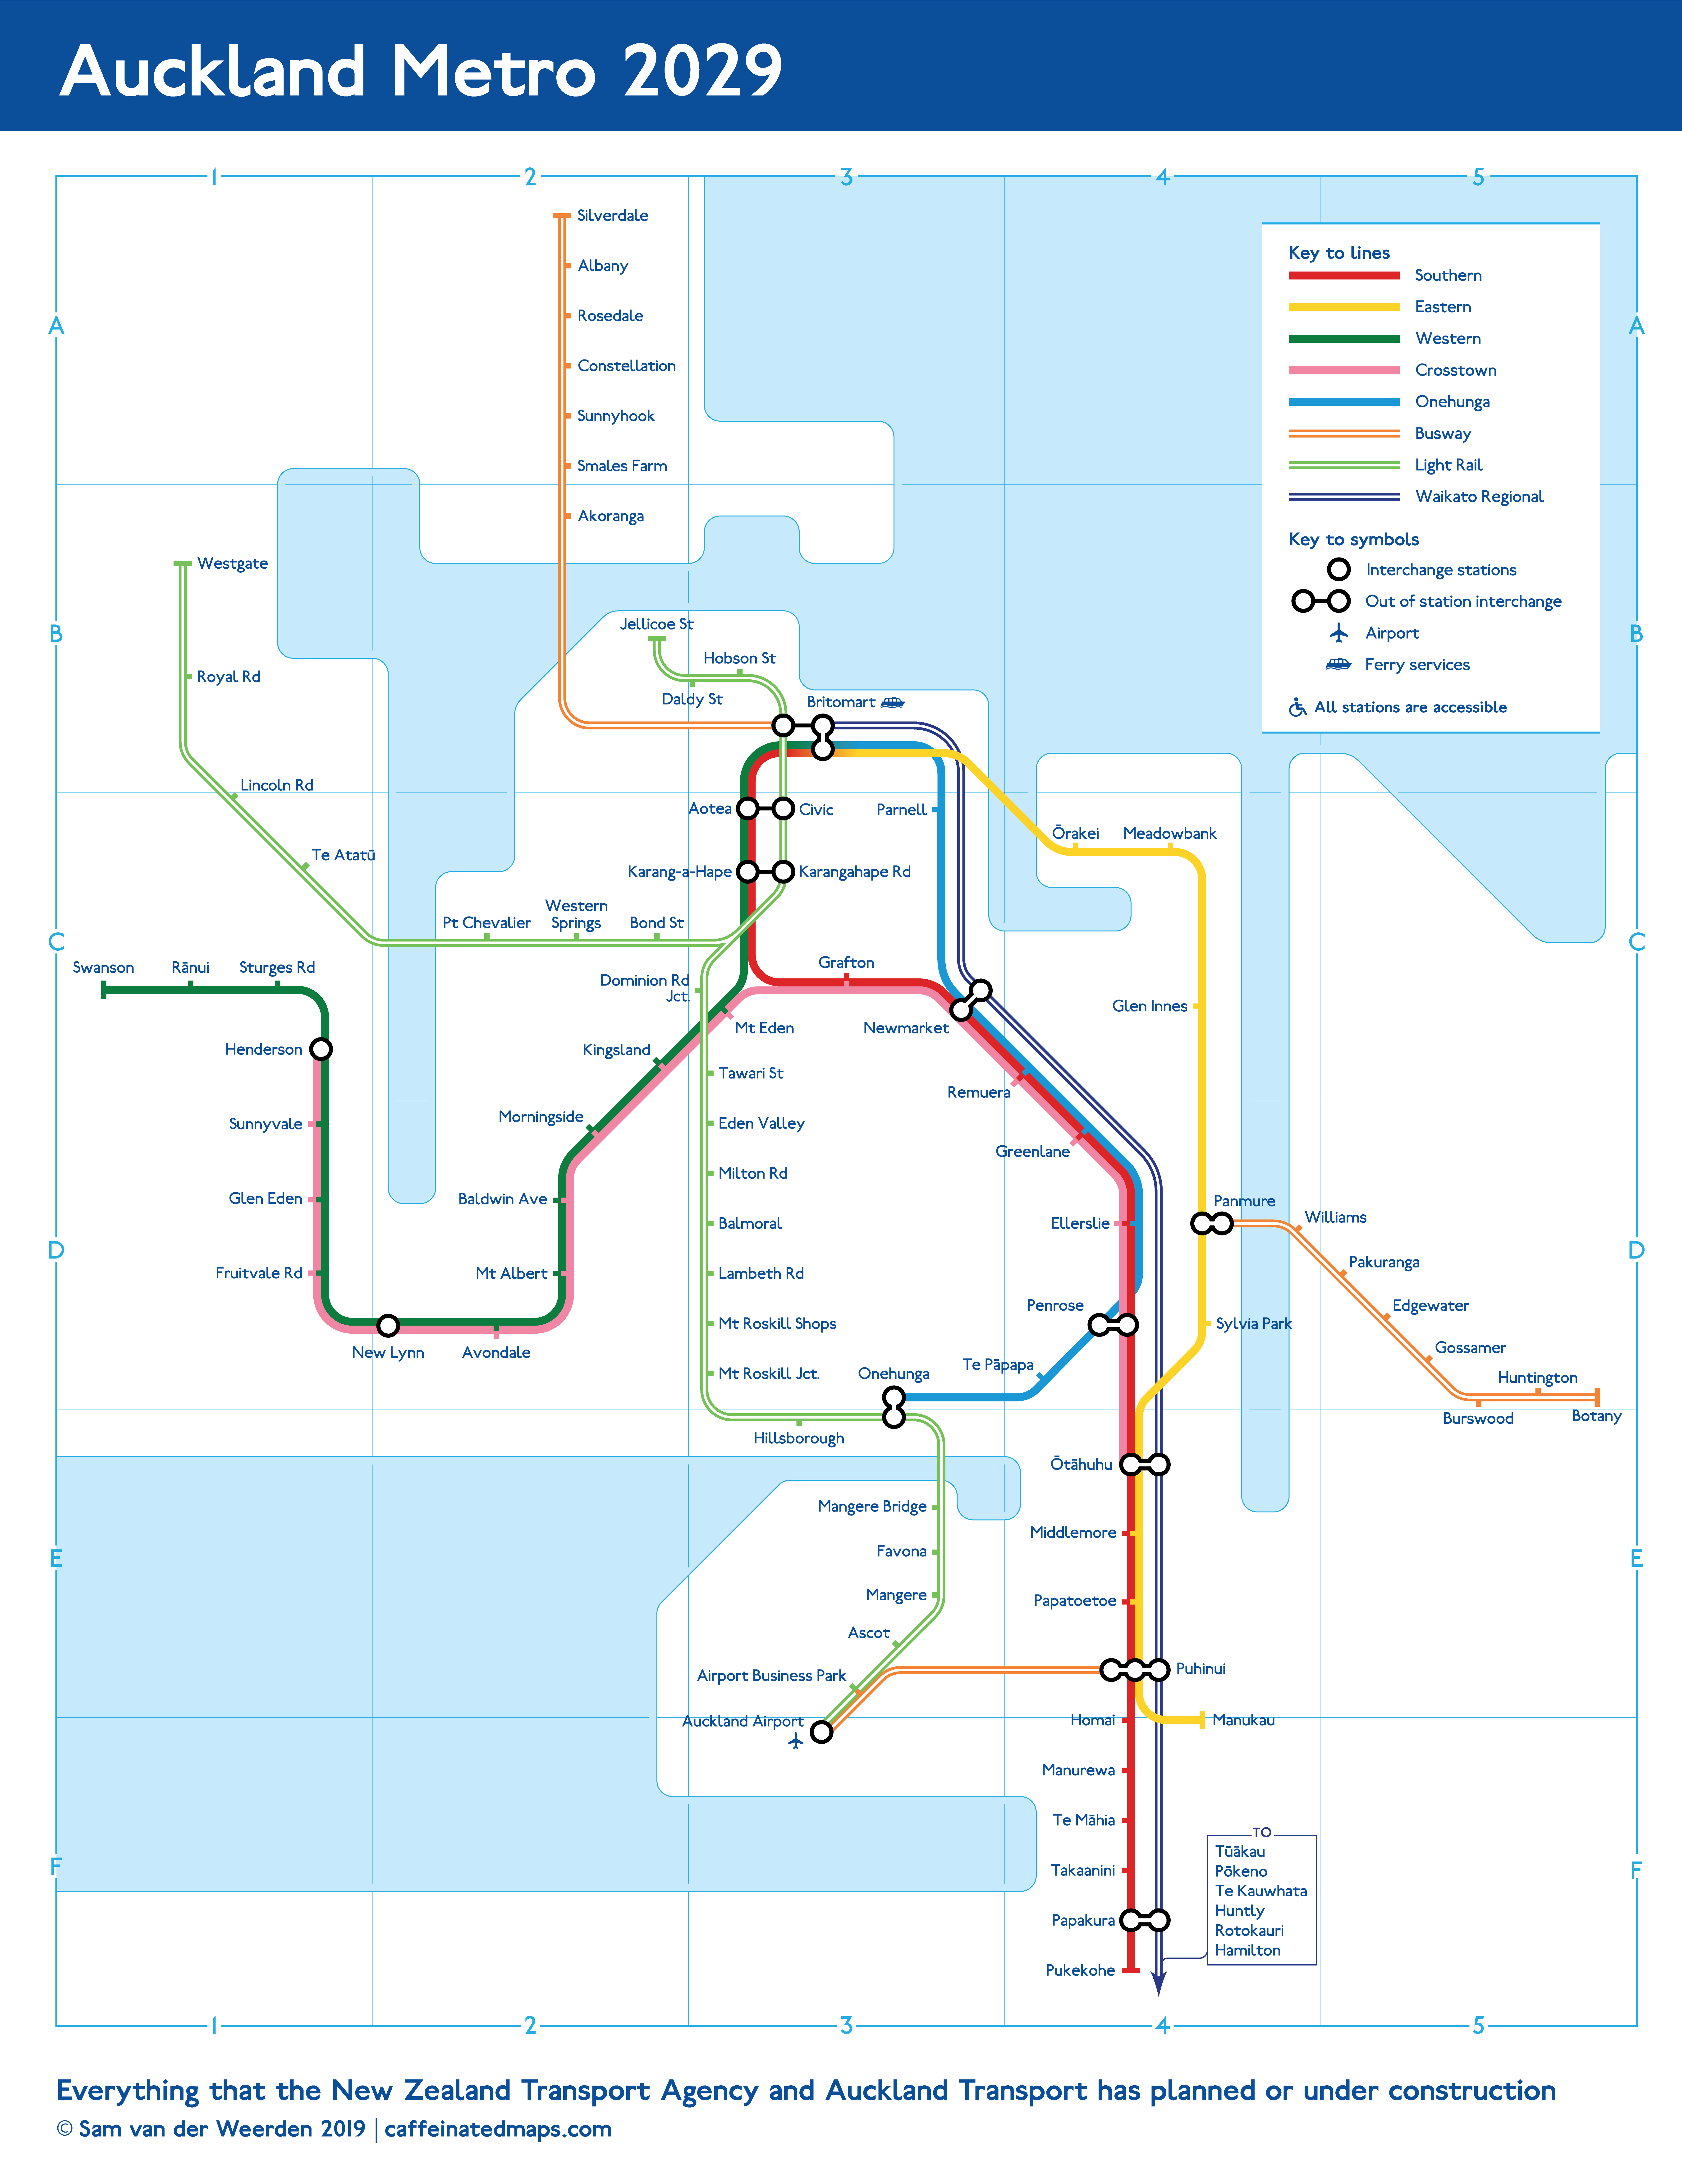 London Light Rail Map.Auckland Metro 2029 In The Style Of The Tube Map Caffeinated Maps